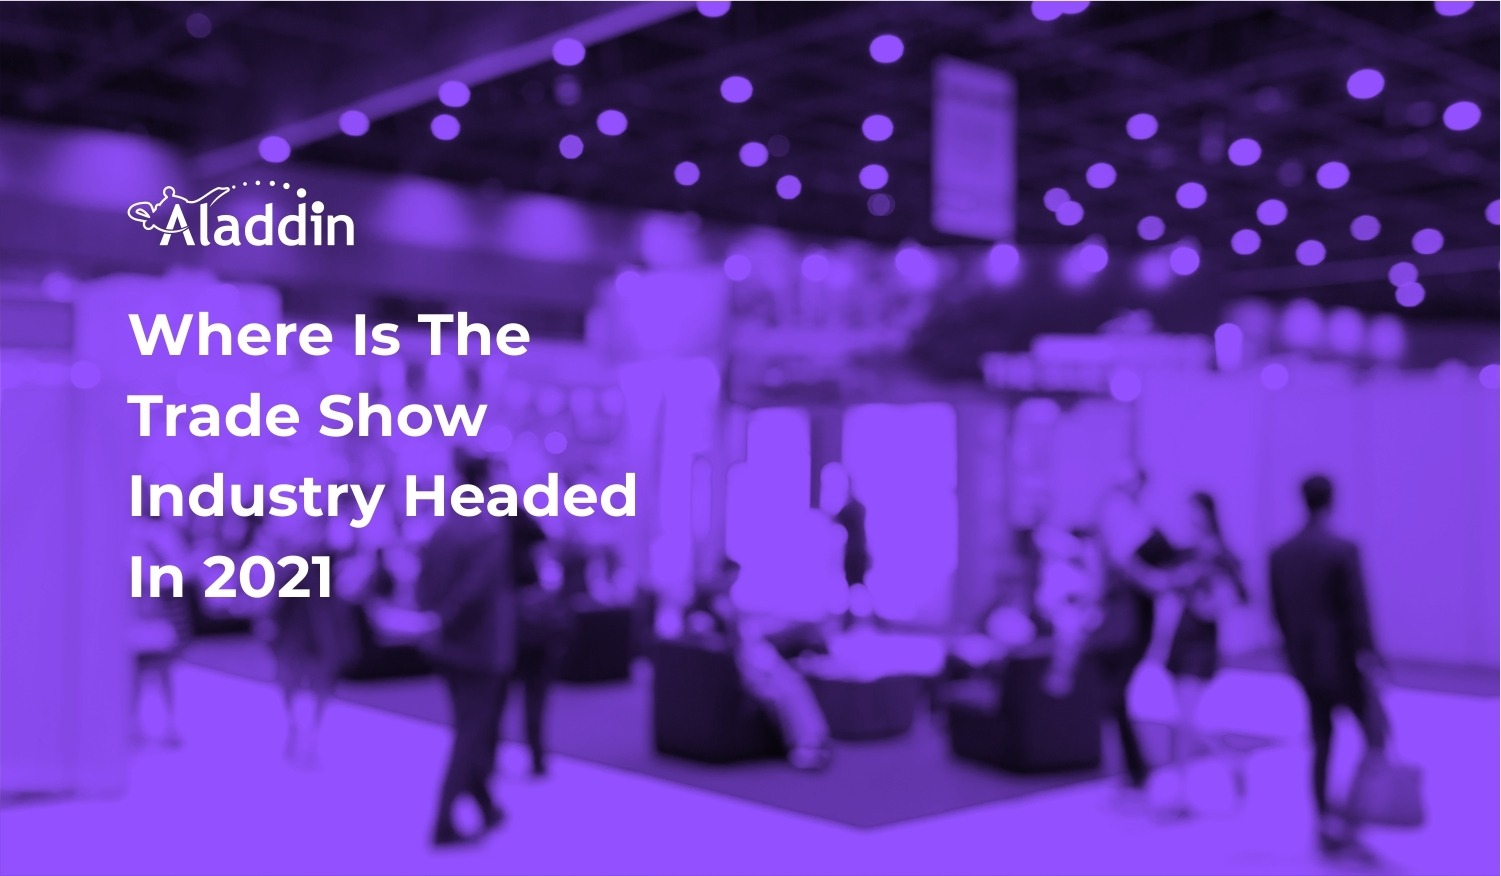 Where Is The Trade Show Industry Headed In 2021?